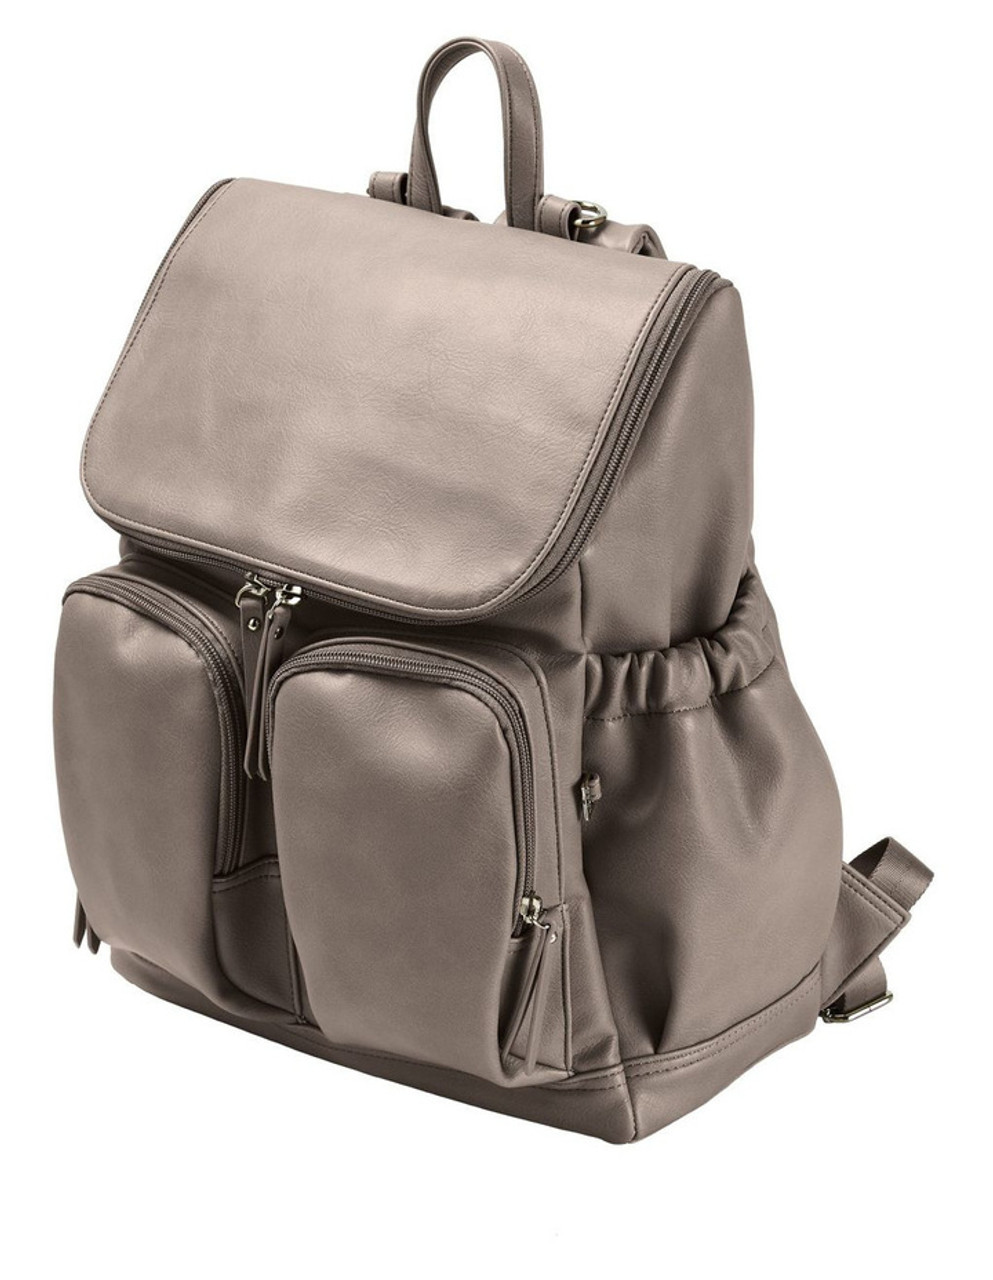 OiOi Faux Leather Nappy Backpack TAUPE at Baby Barn Discounts Oioi stunning nappy bag has loads of handy pockets designed to carry all of those baby necessities and includes a cushioned changing mat, insulated bag for babys bottle and a zip top purse for any soiled items.